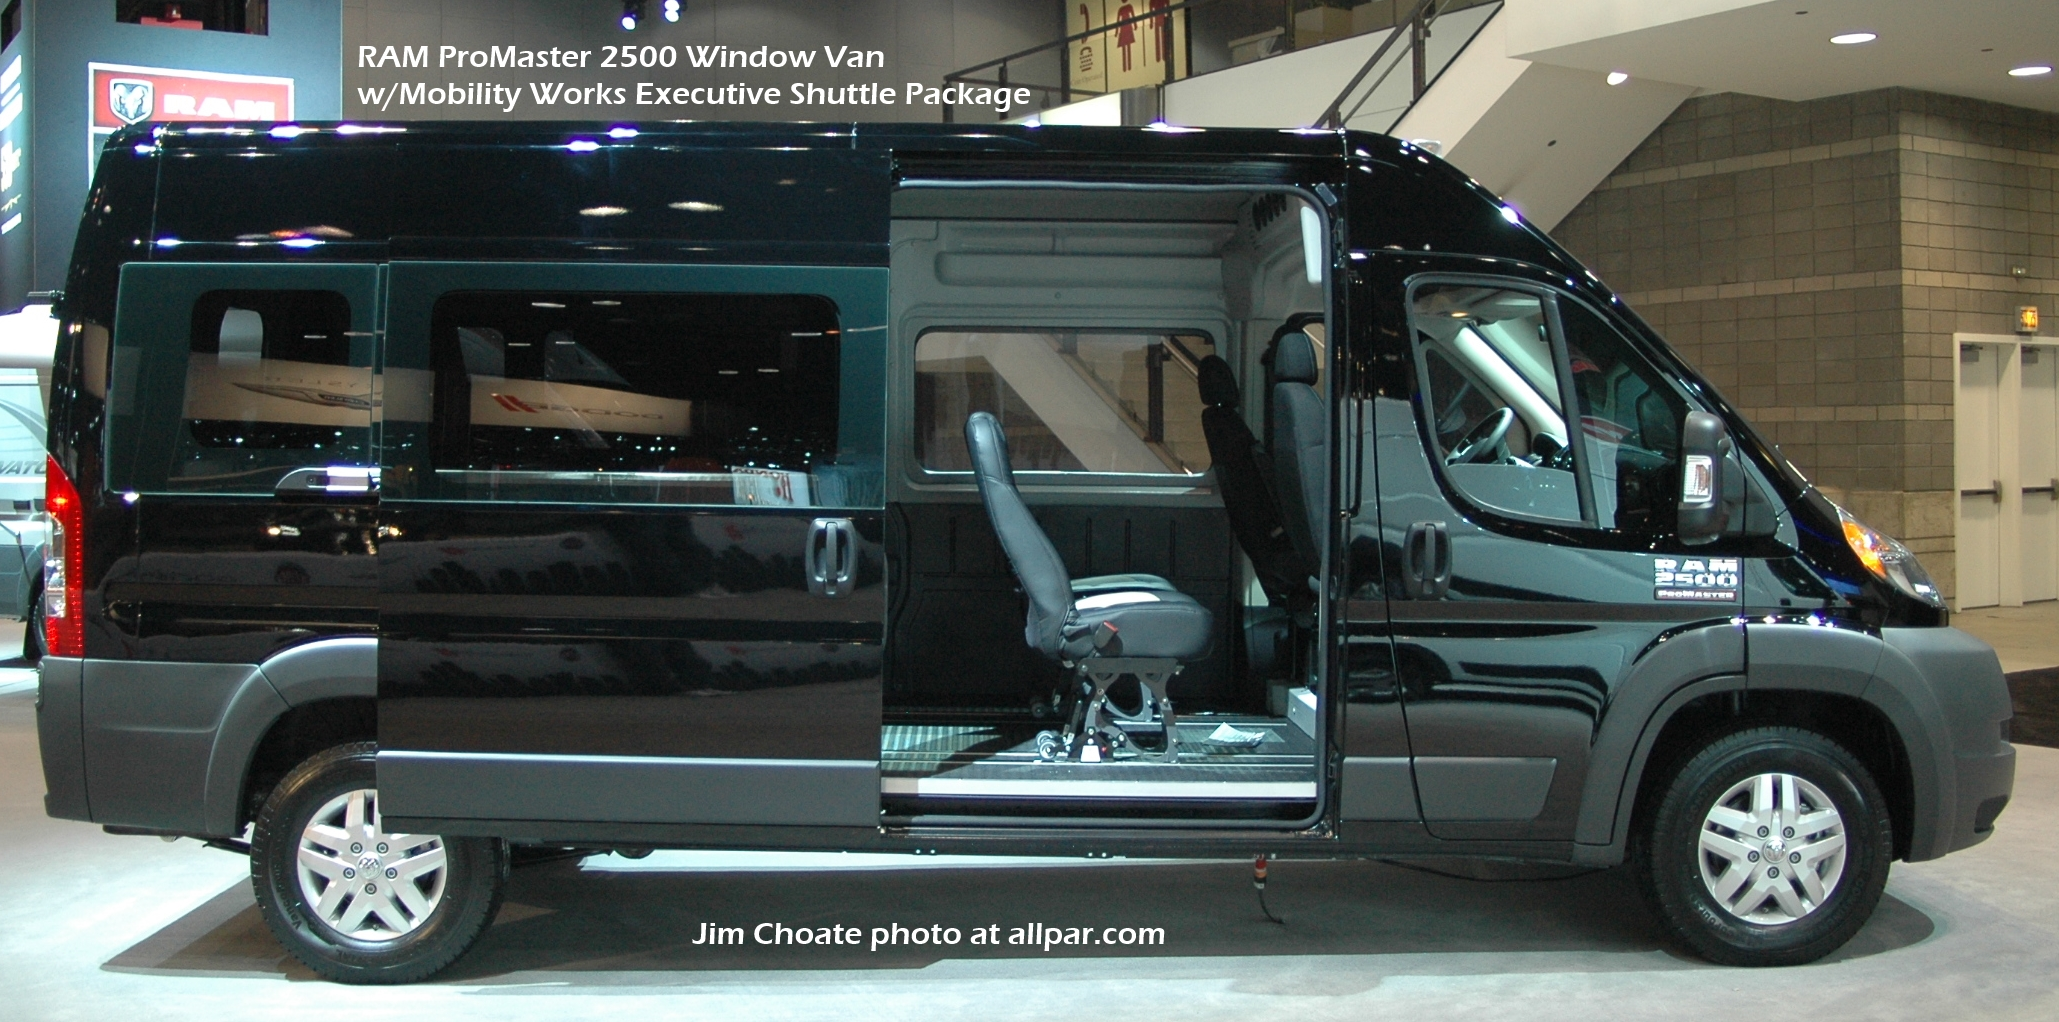 Ram Promaster Window Van #11